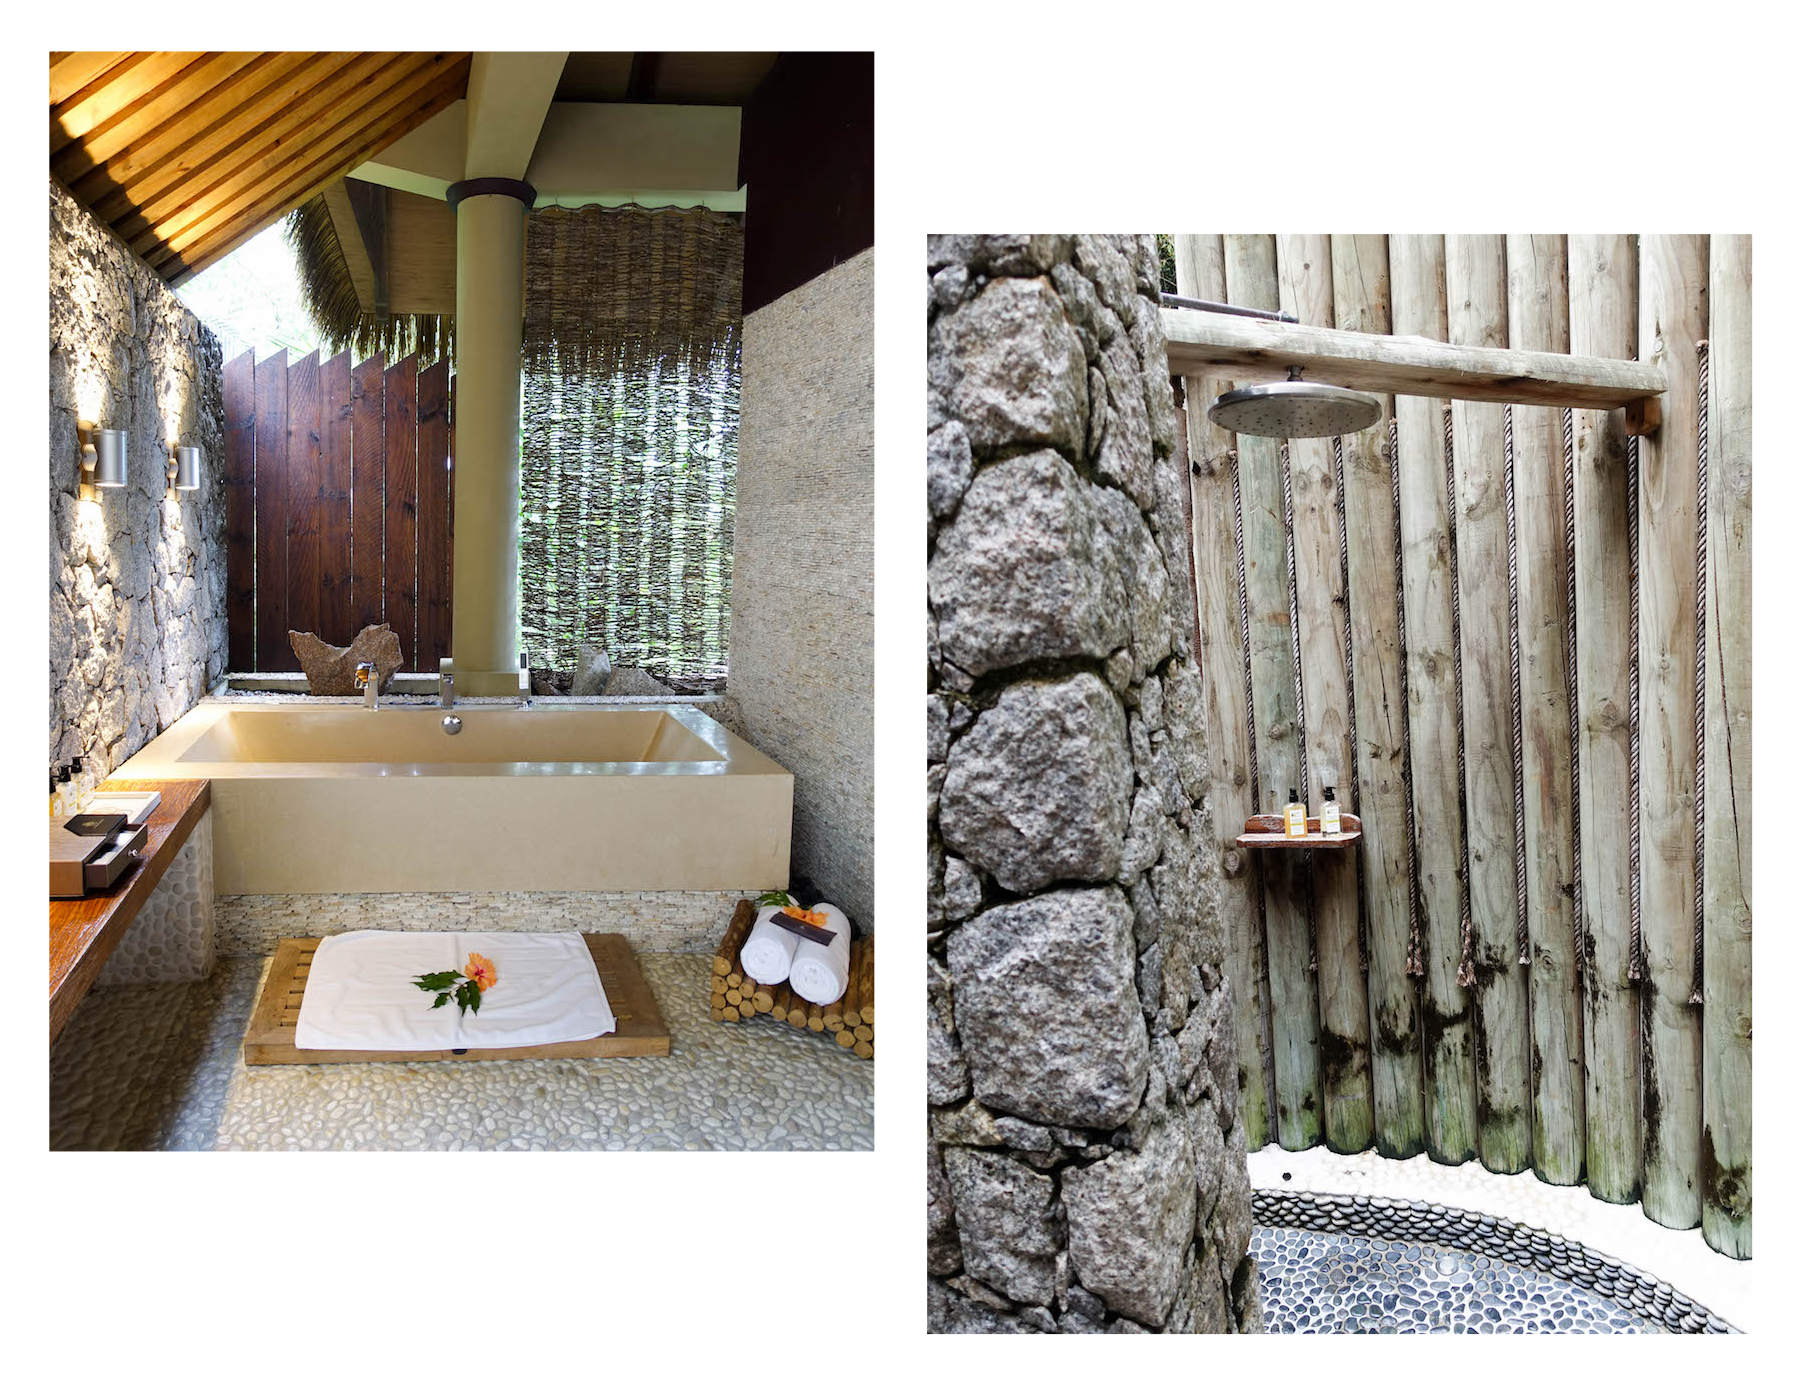 suelovesnyc_seychellen_hotel_auf_la_digue_domaine_de_lorangeraie_orangeraie_hillside_outdoor_bathroom